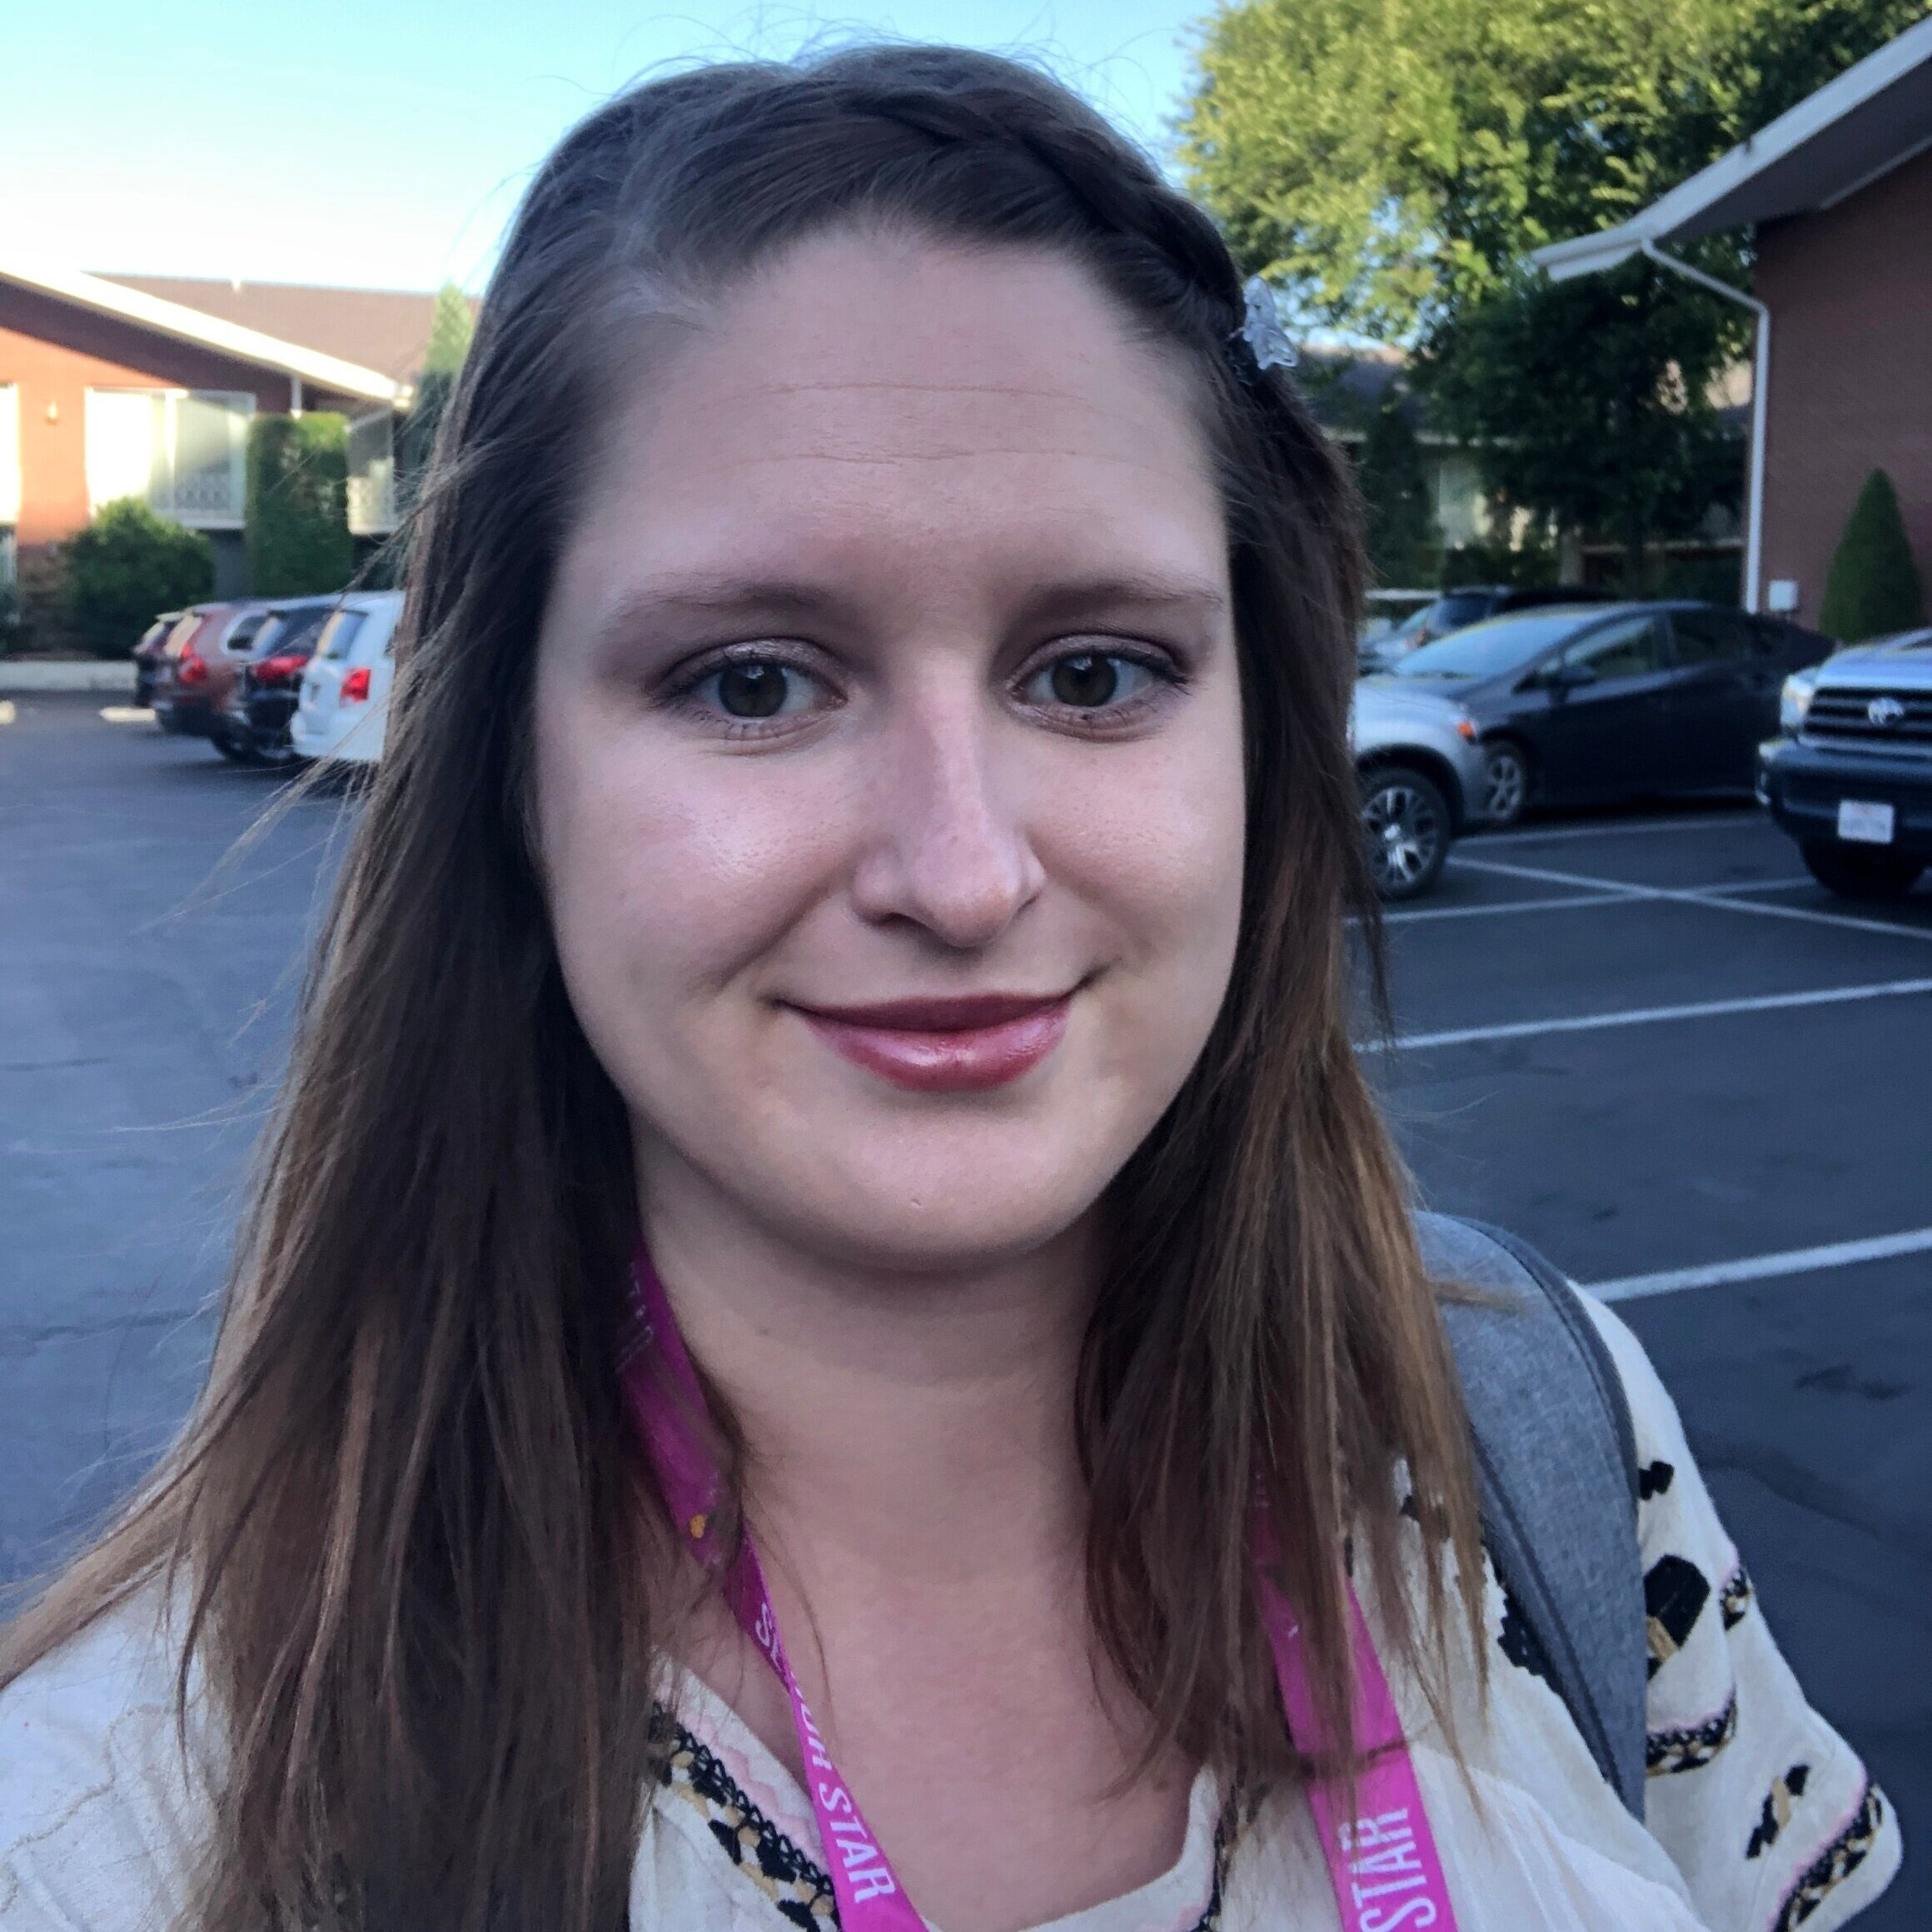 Terese Wylie - RANK: SENIOR STARI'm a 27 year old teacher and new homeowner who fell in love with Young Living two years ago. I love how every area of my life can be supported in some way using the amazing oils and products offered!